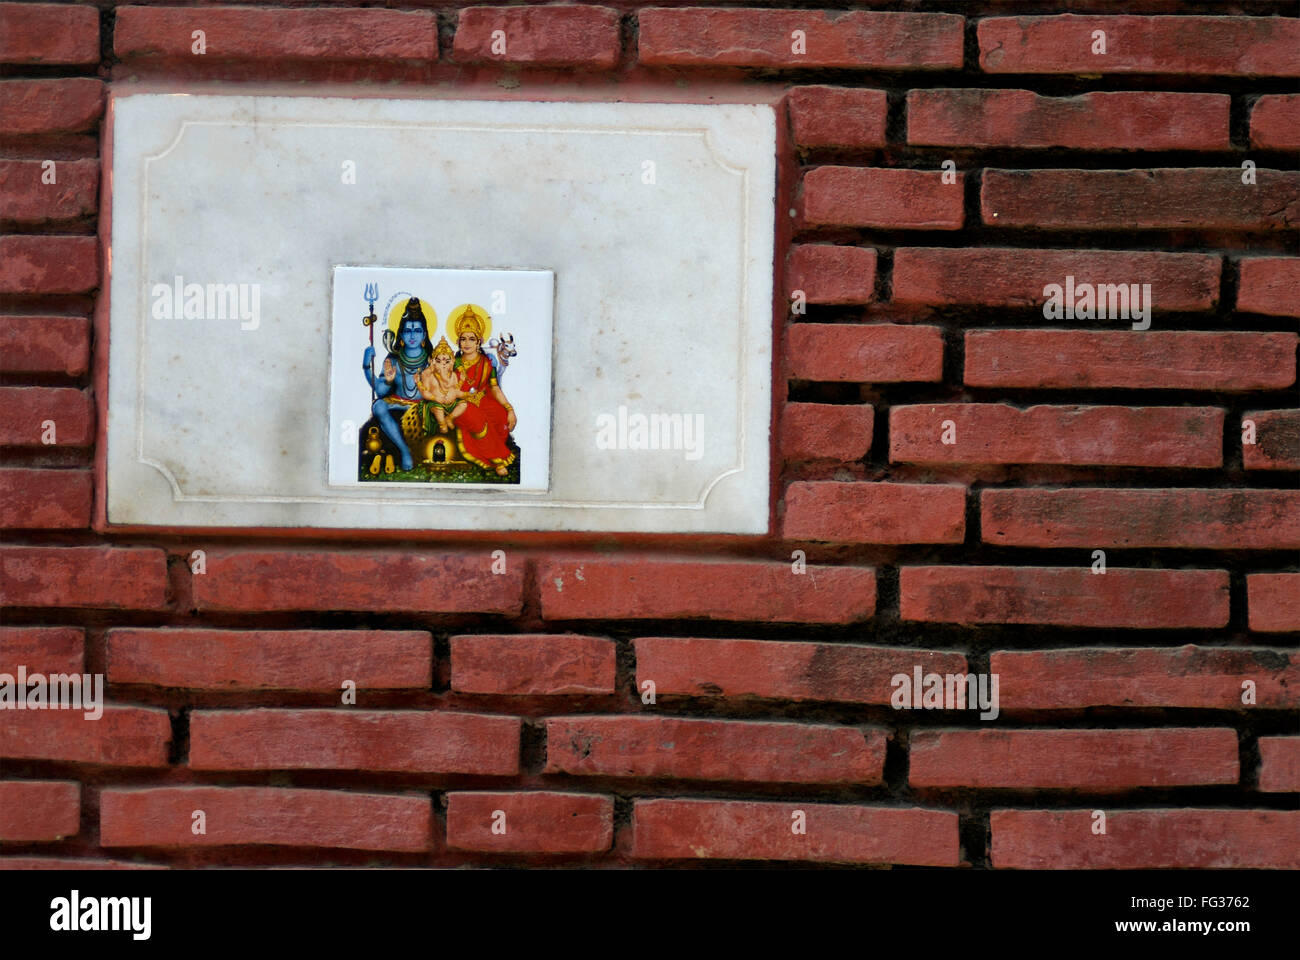 Red brick wall with tile designed with impression of god Shiva goddess Parvati and Lord Ganesha - Stock Image